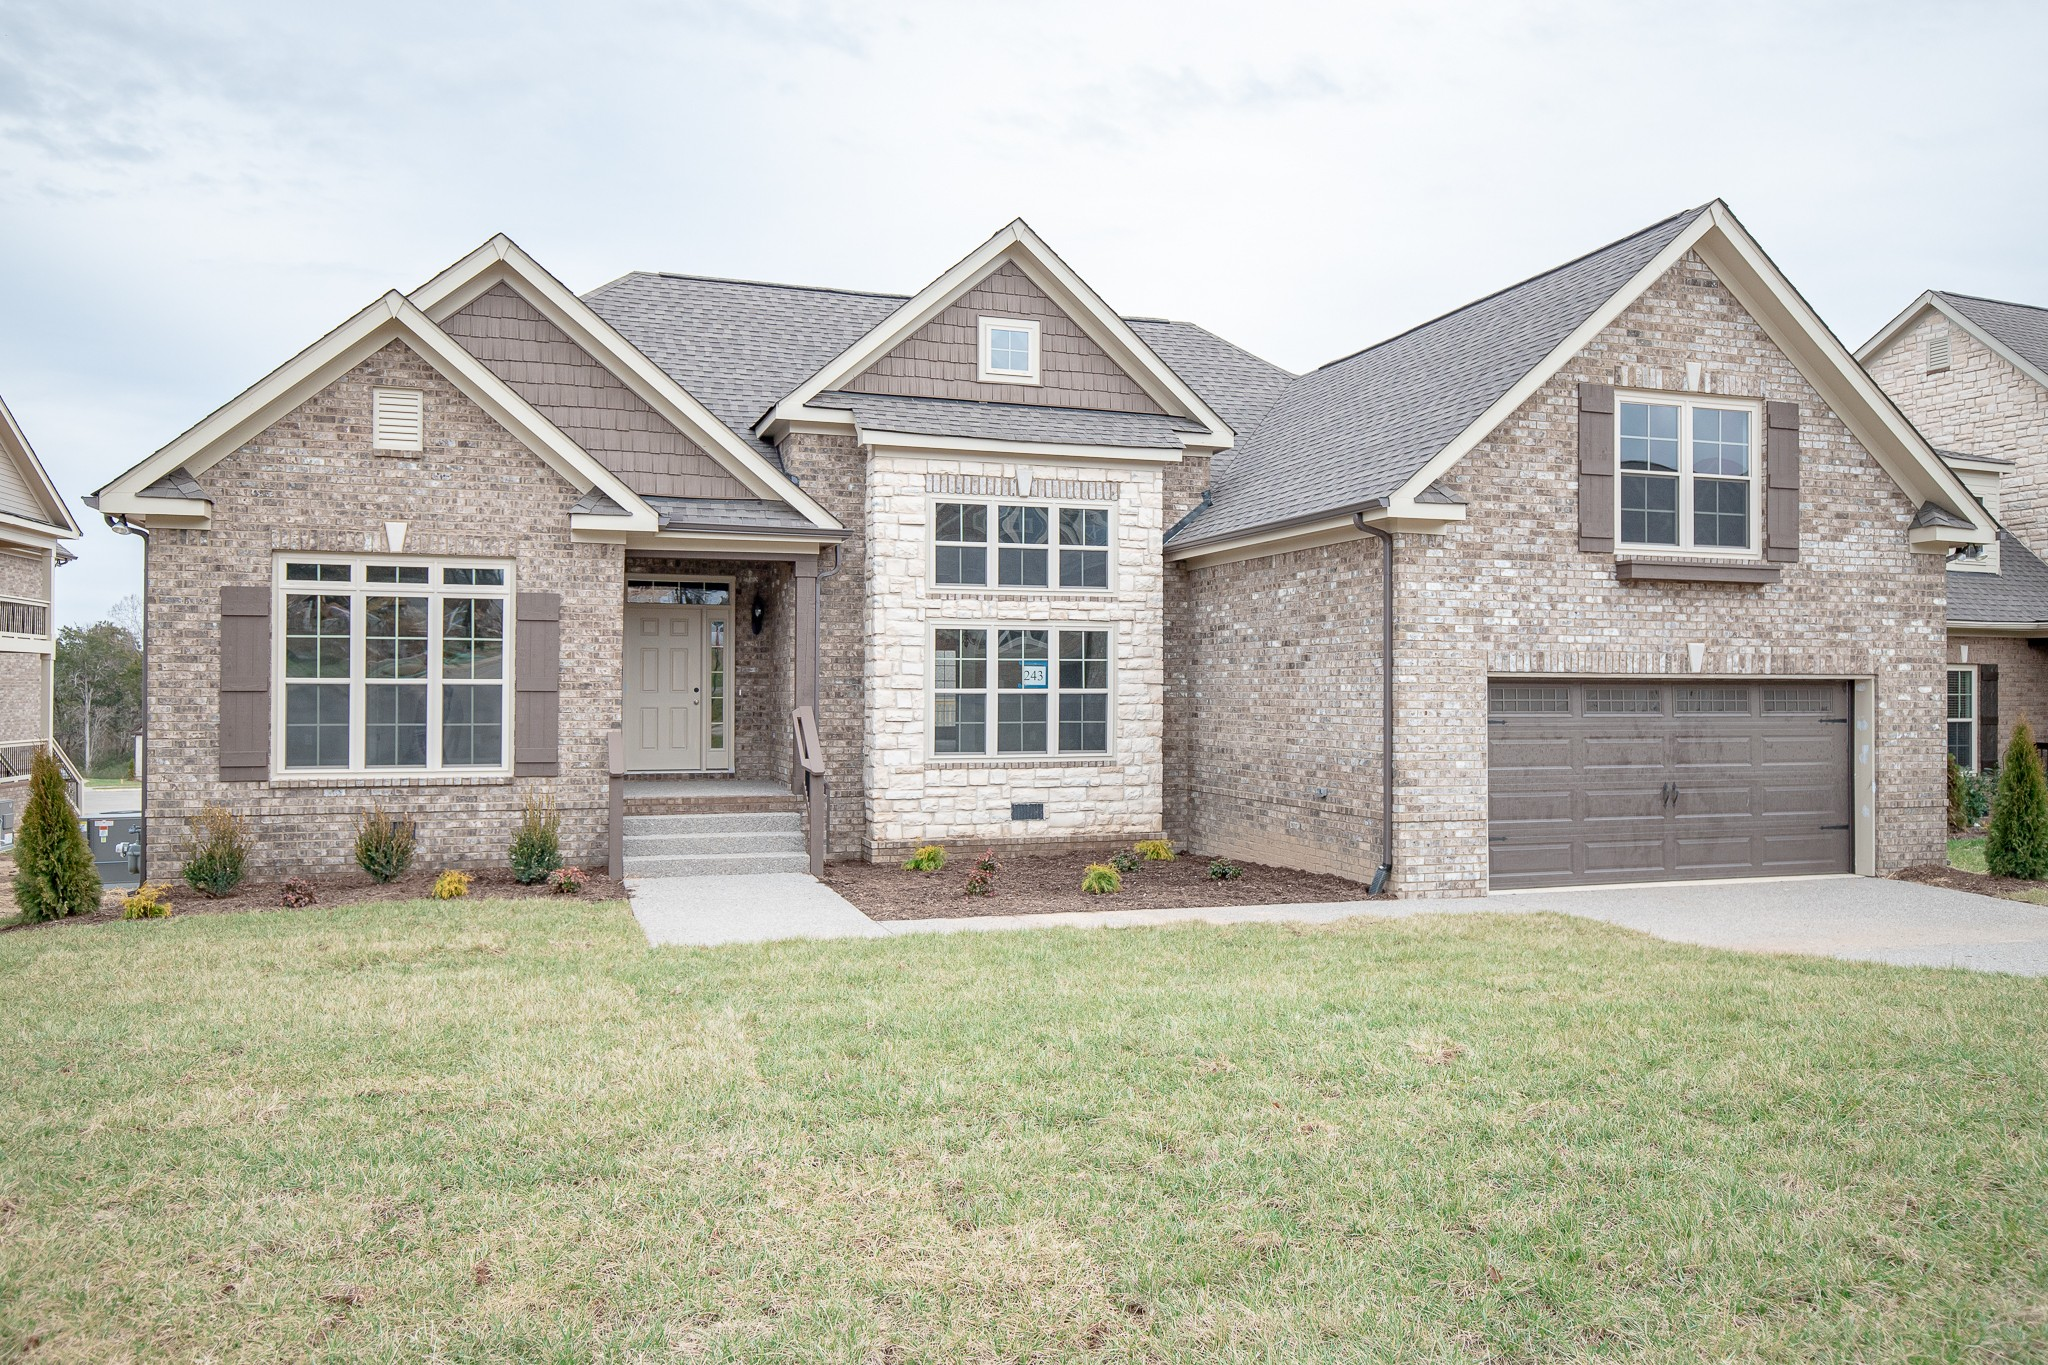 7001 Minor Hill Dr Lot 243, Spring Hill, Tennessee